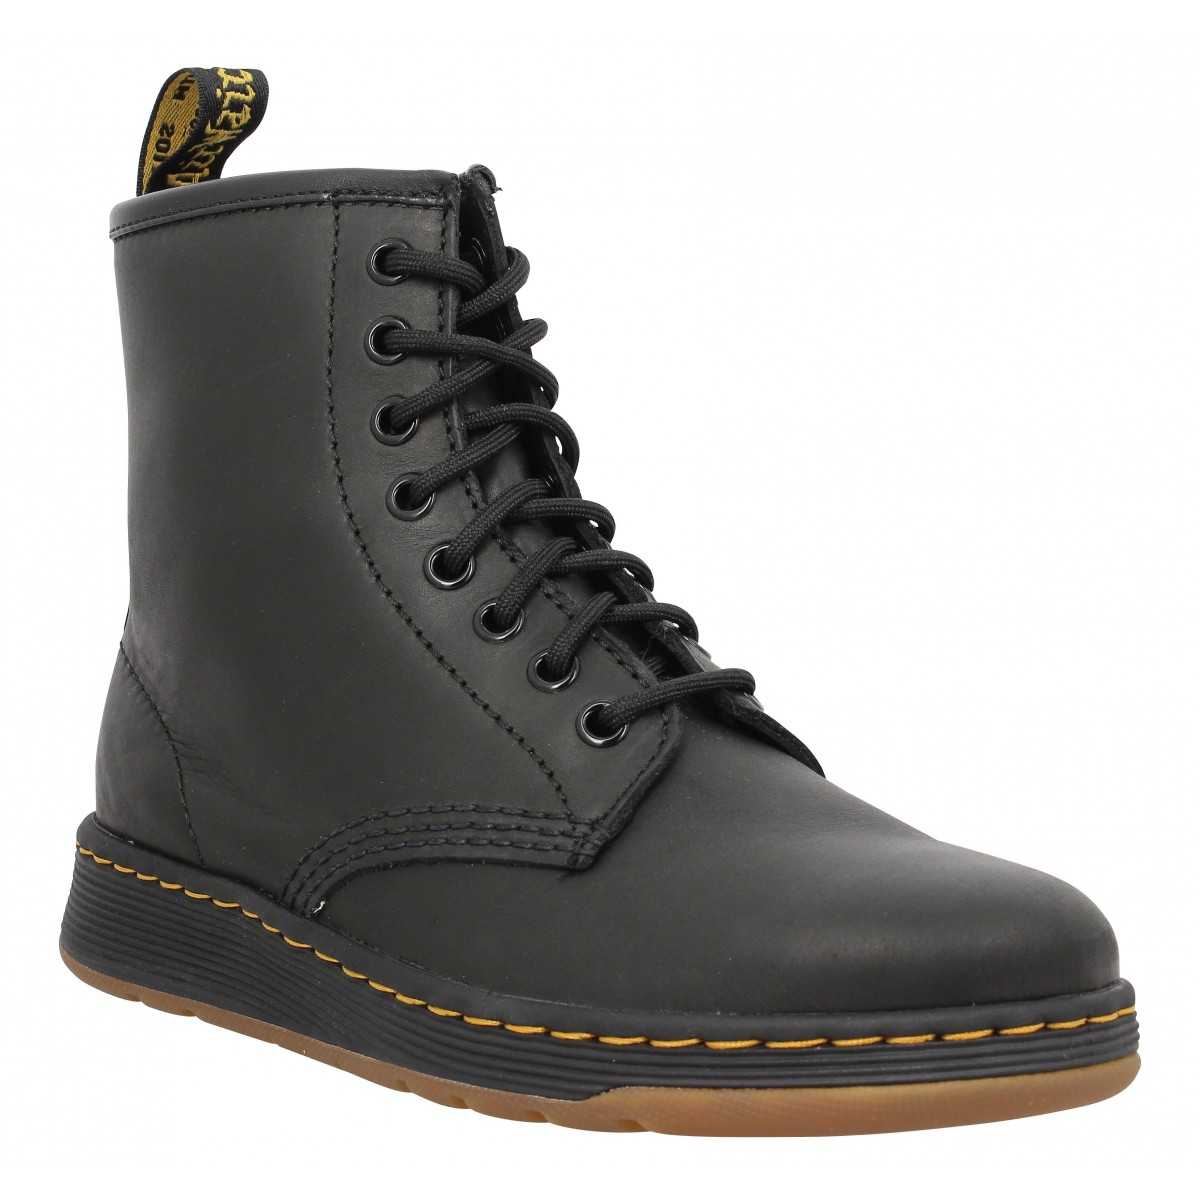 soldes dr martens newton femme noir femme fanny chaussures. Black Bedroom Furniture Sets. Home Design Ideas